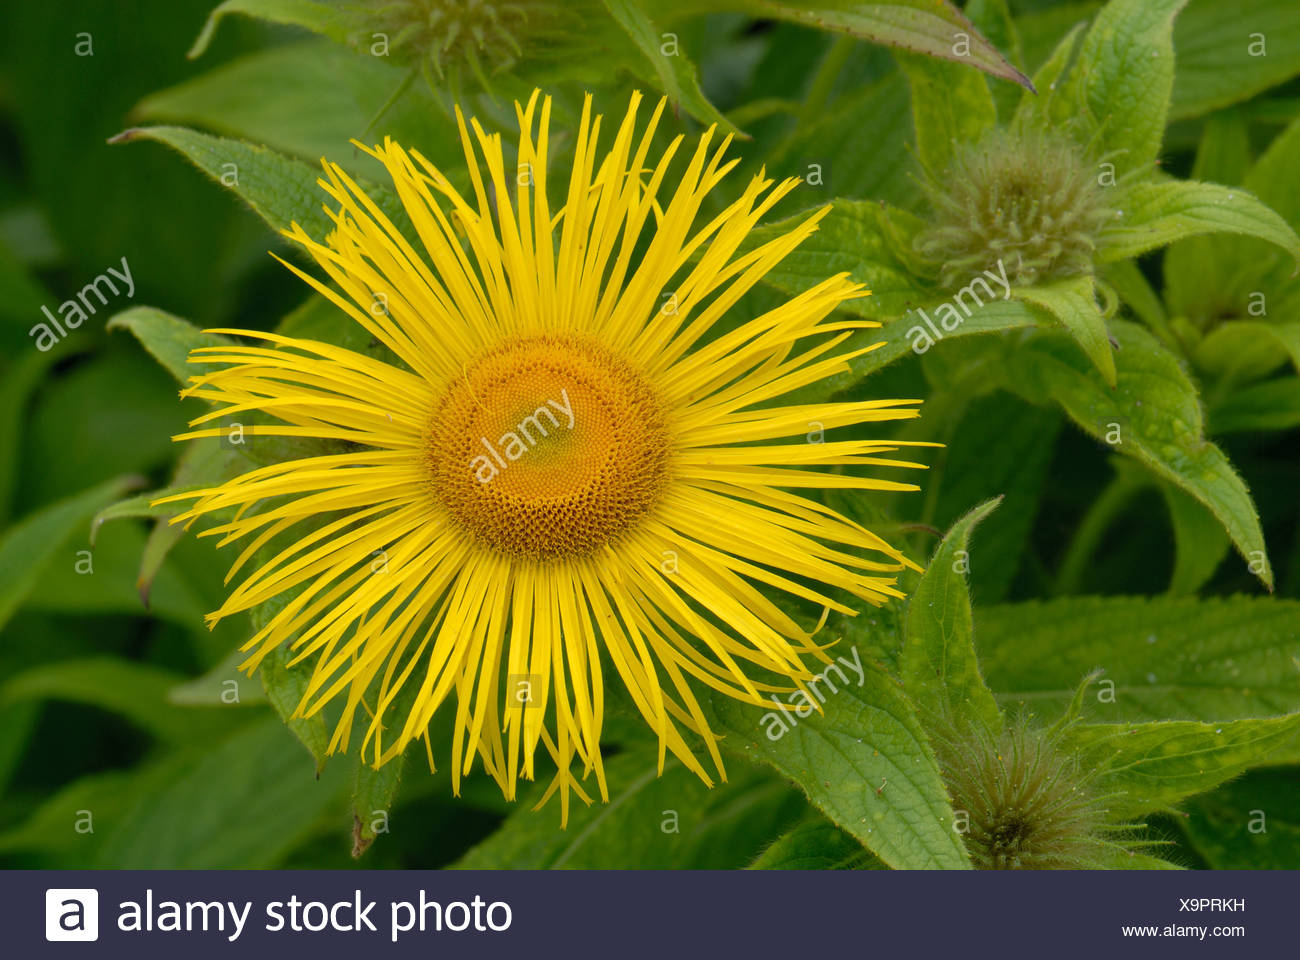 Inula hookeri flower against unopened buds and leaves - Stock Image